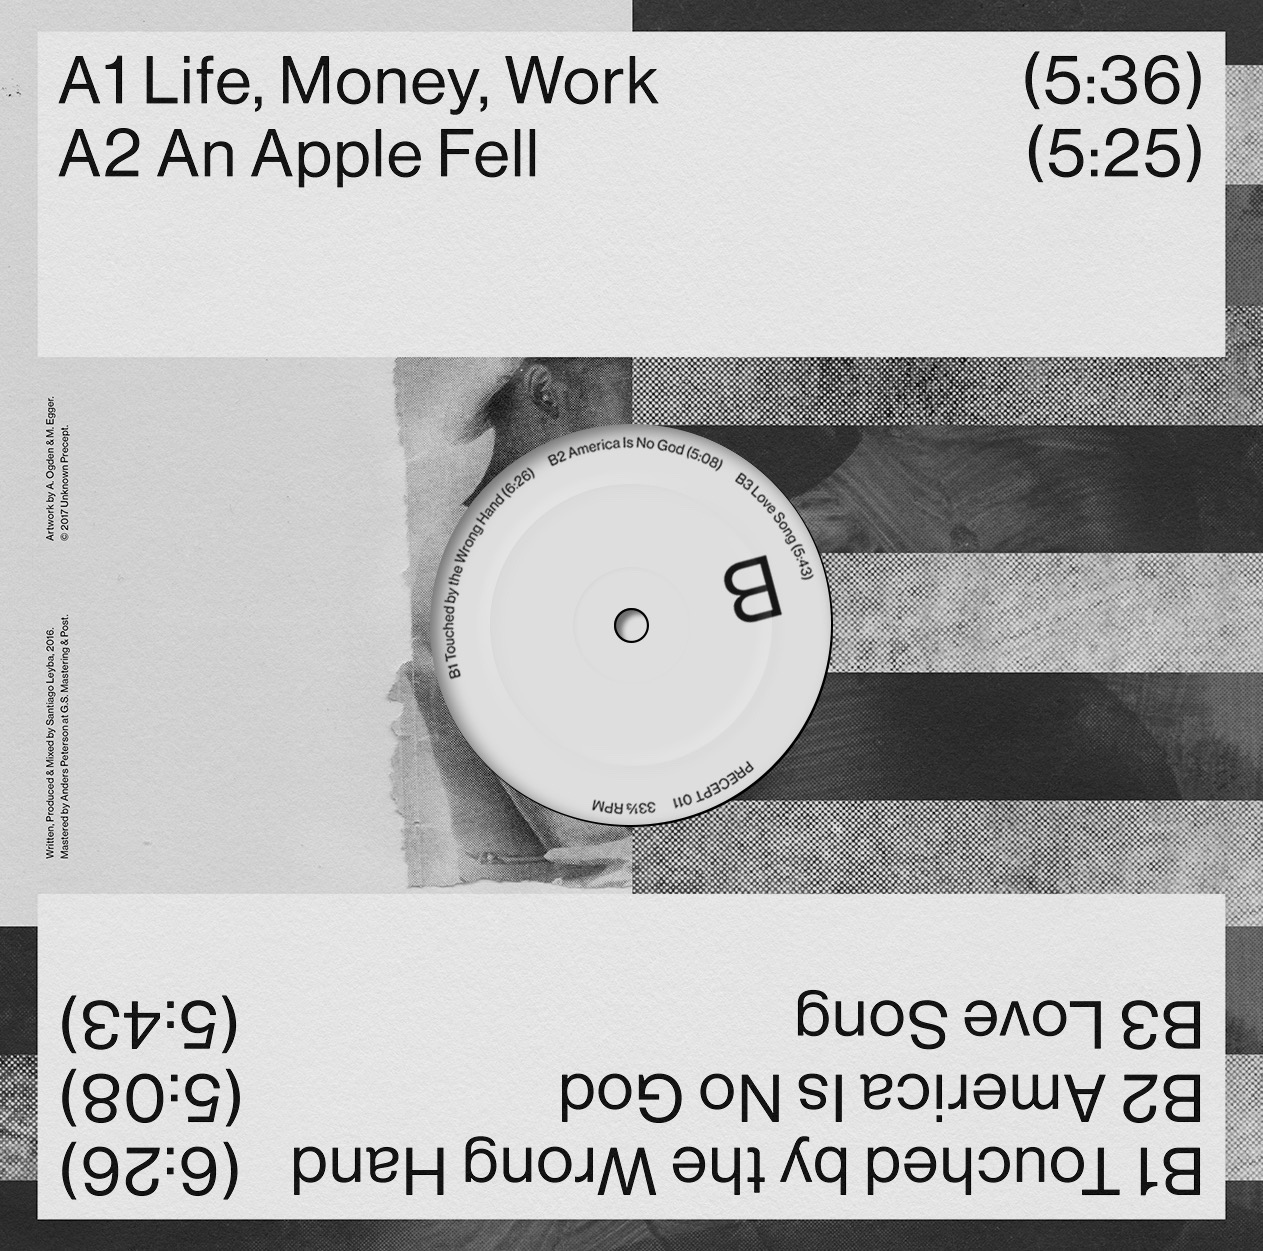 Life, Money, Work